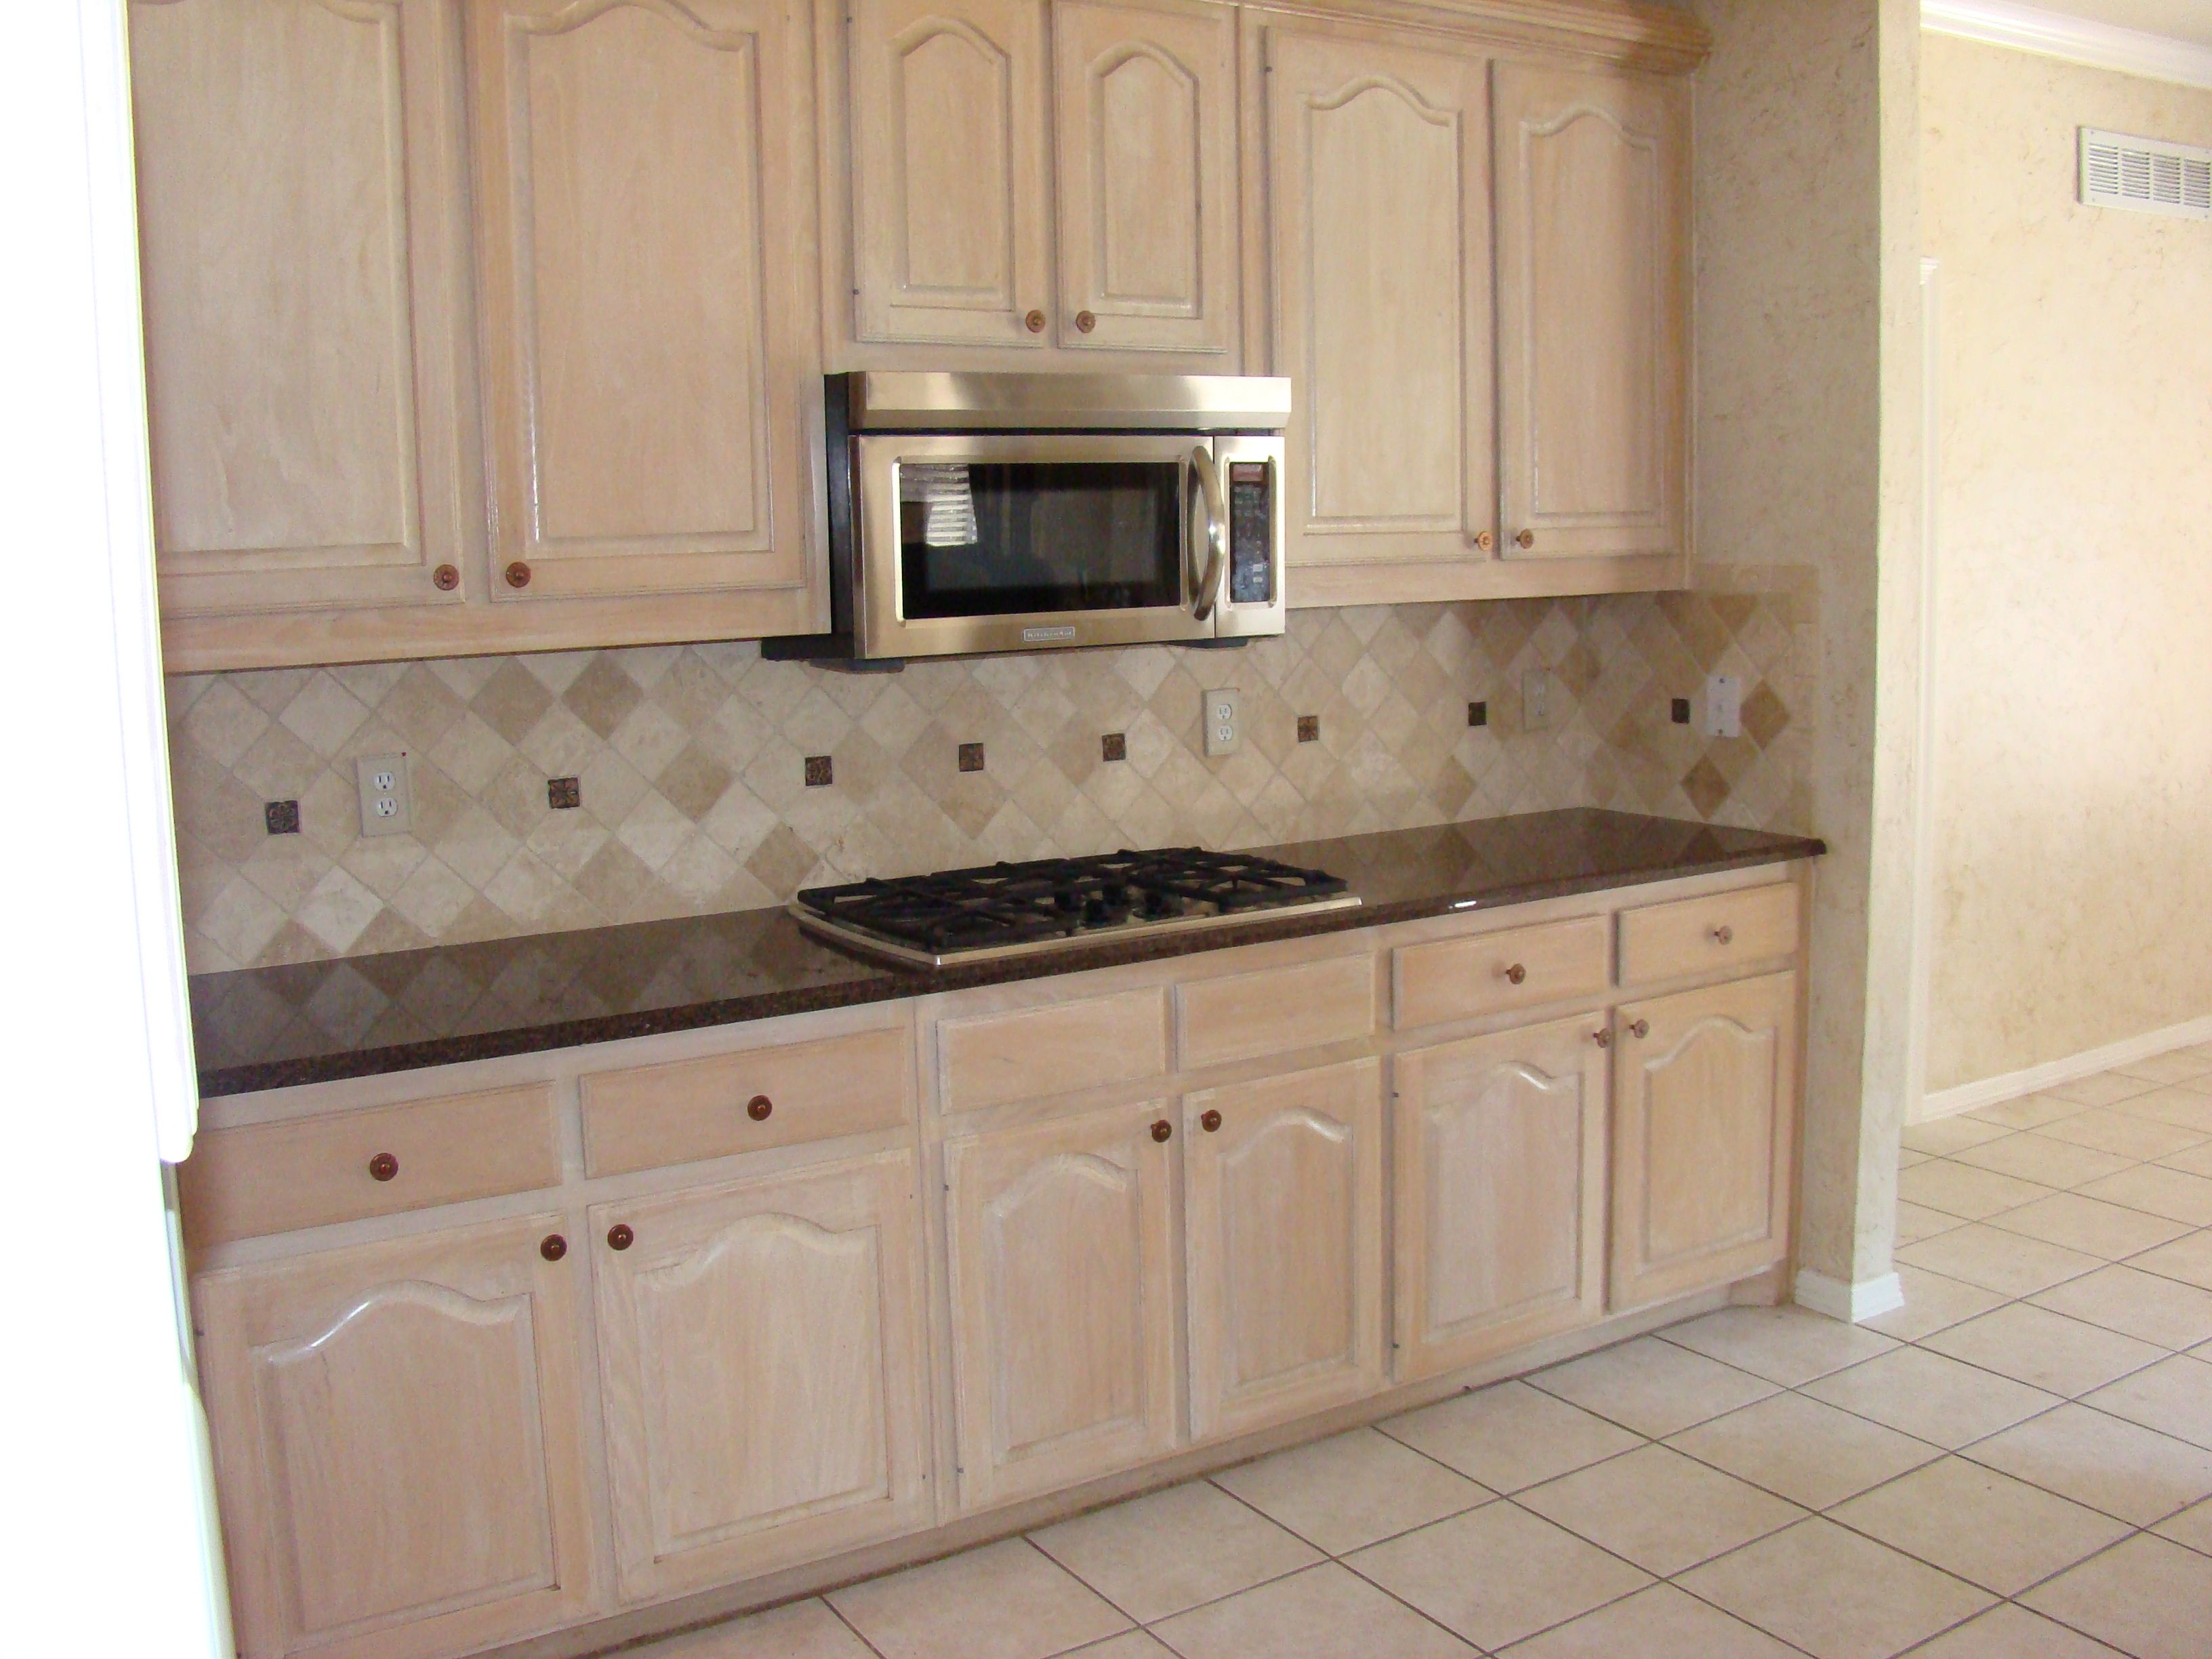 Kitchens with pickled oak cabinets kitchen remodel for Kitchen remodel oak cabinets